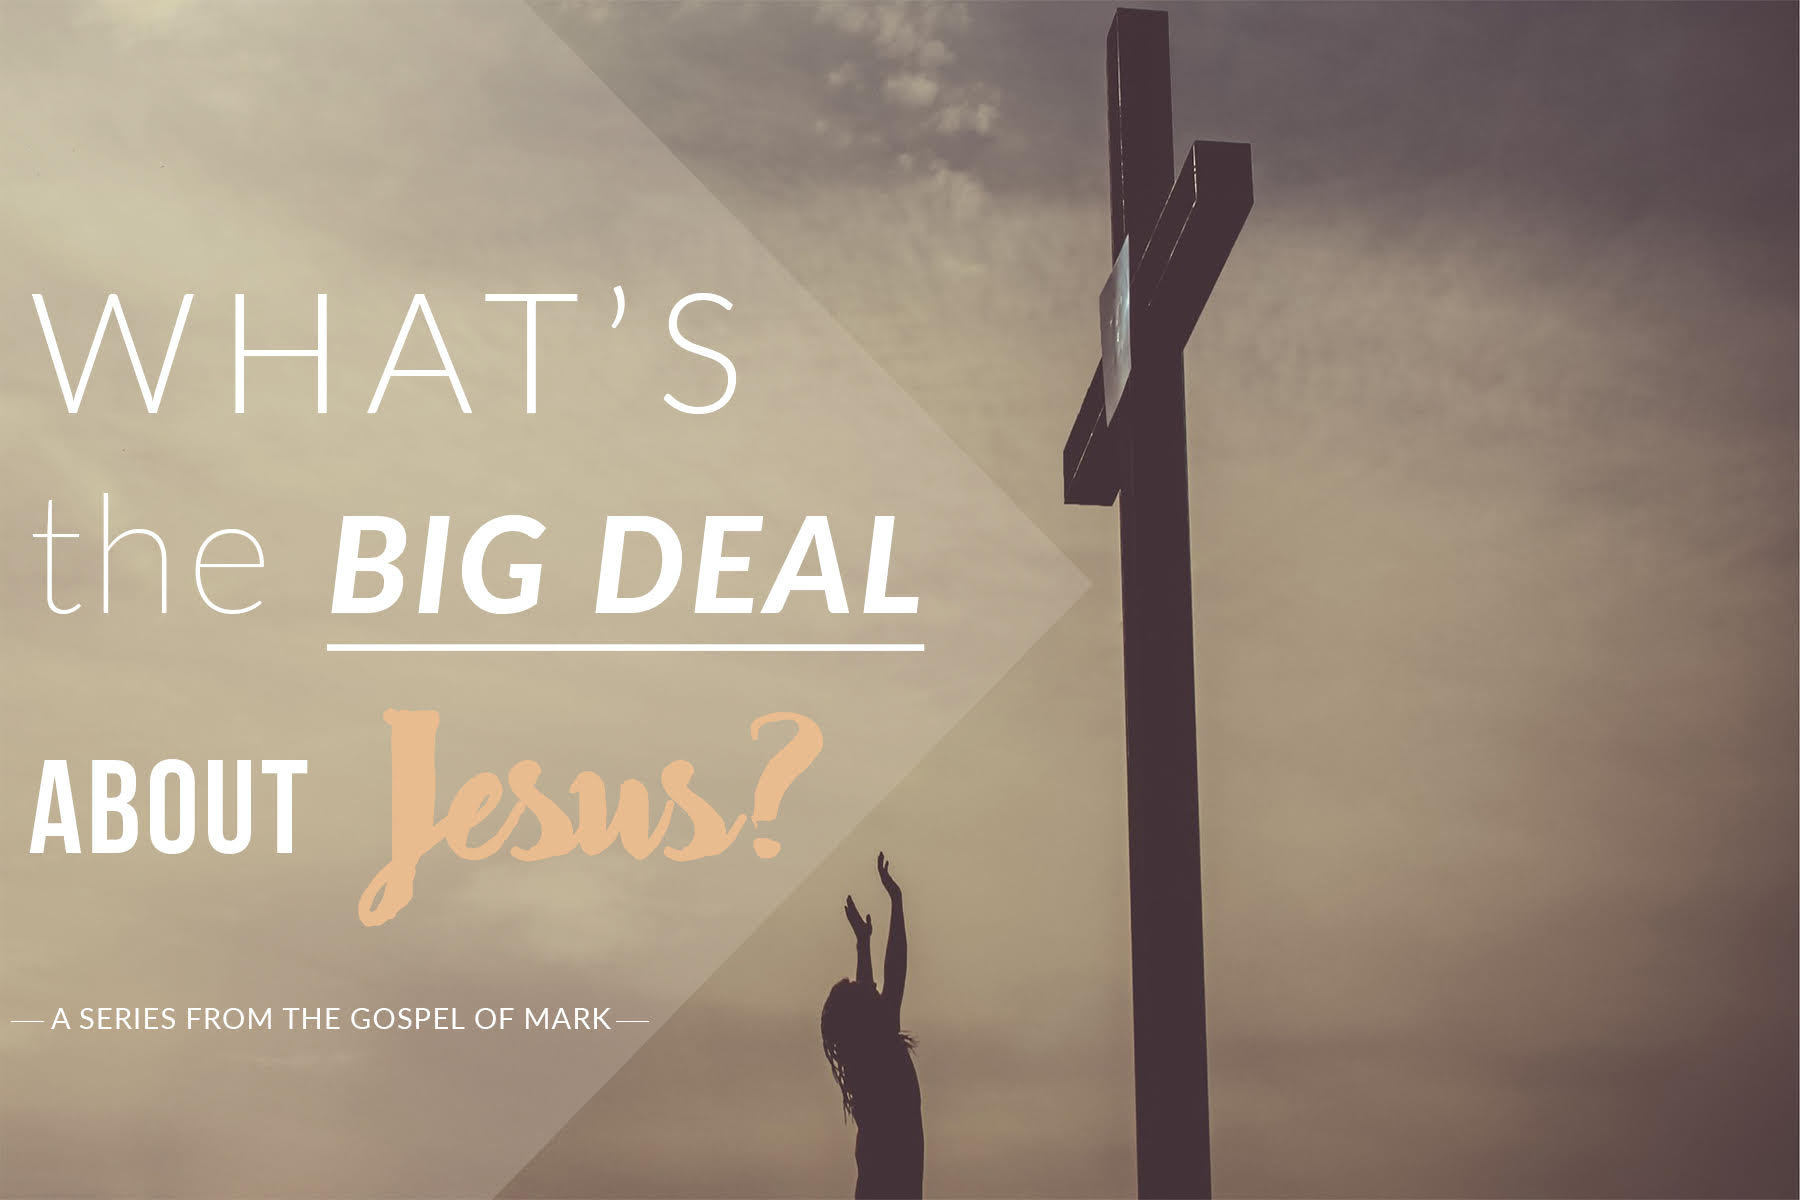 What's the big deal about Jesus.jpg